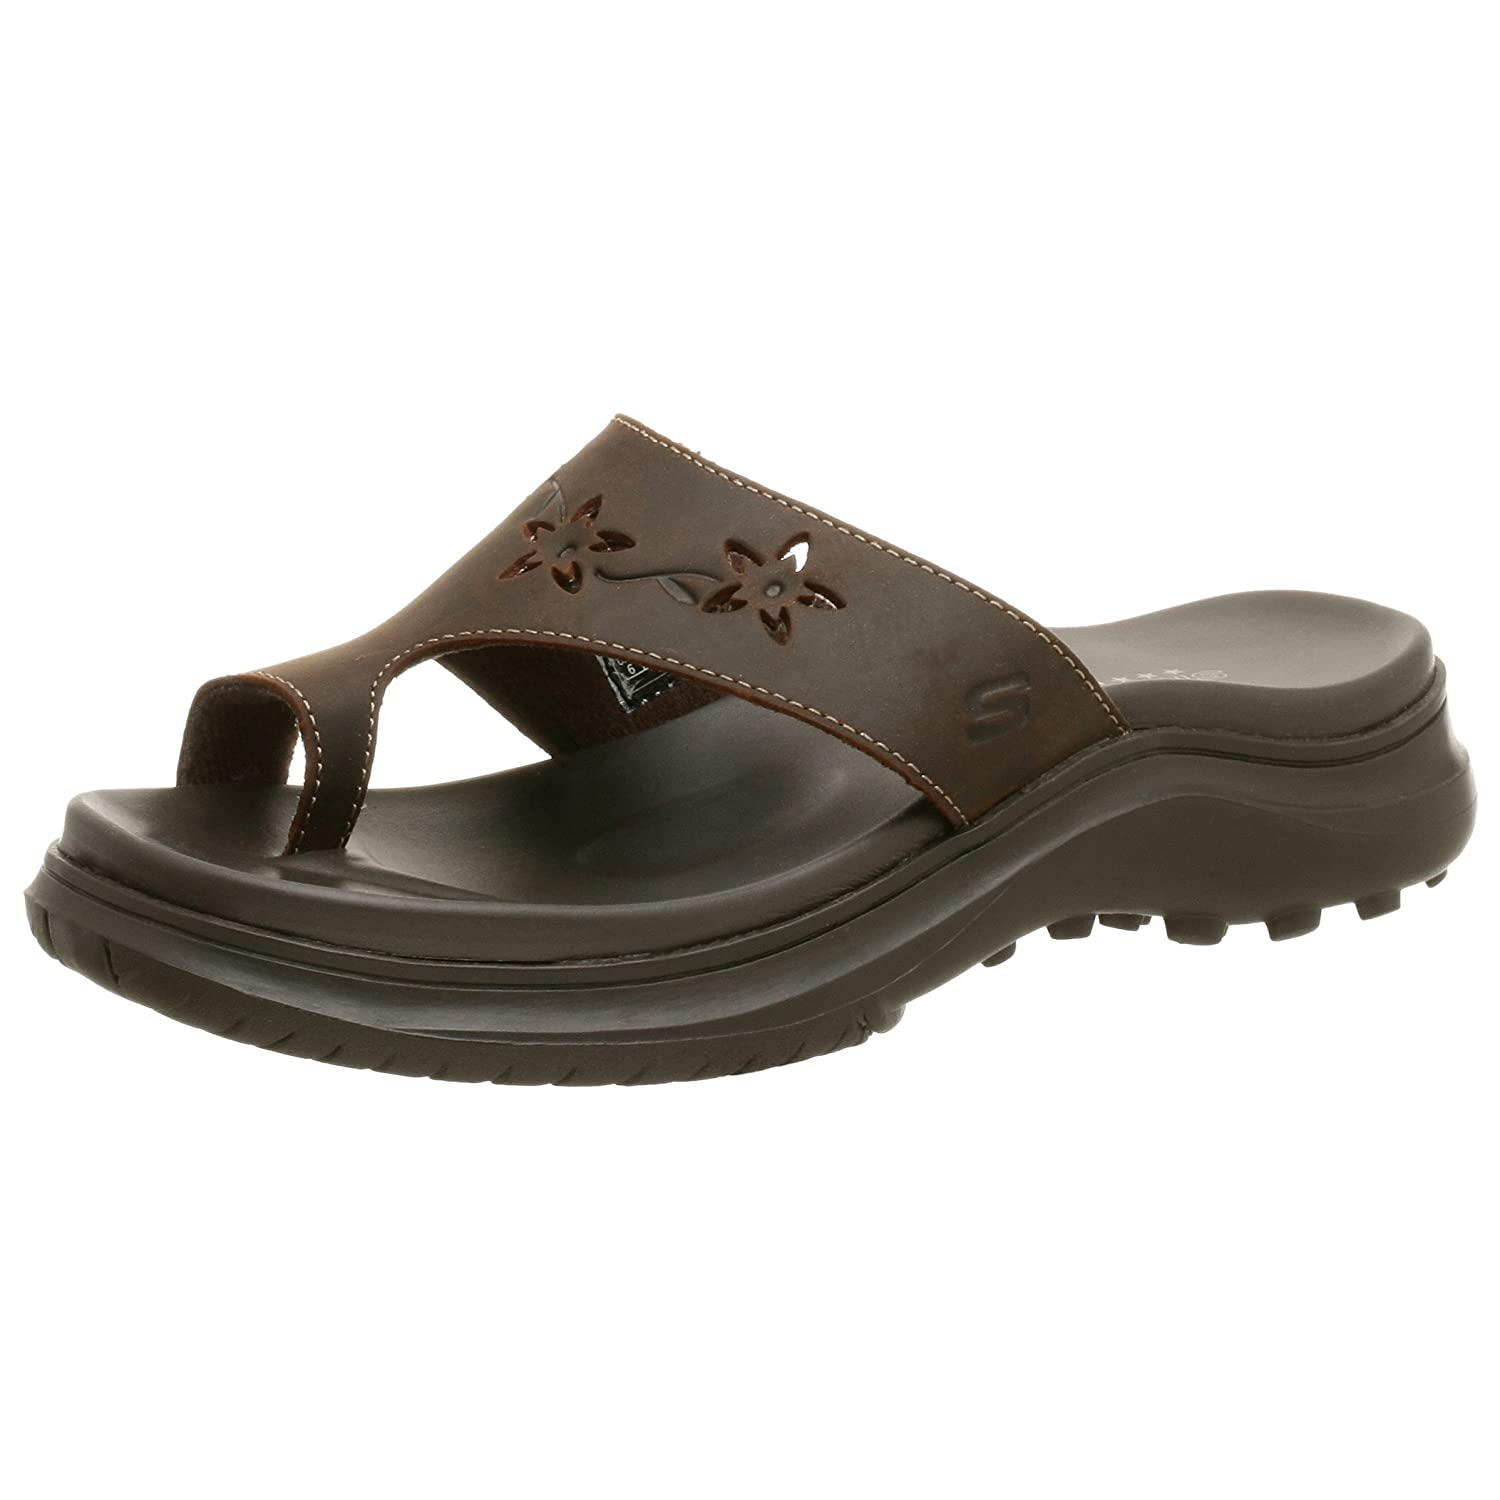 Endless.com: Skechers USA Women's Parterre Thong: Women's Shoes from endless.com